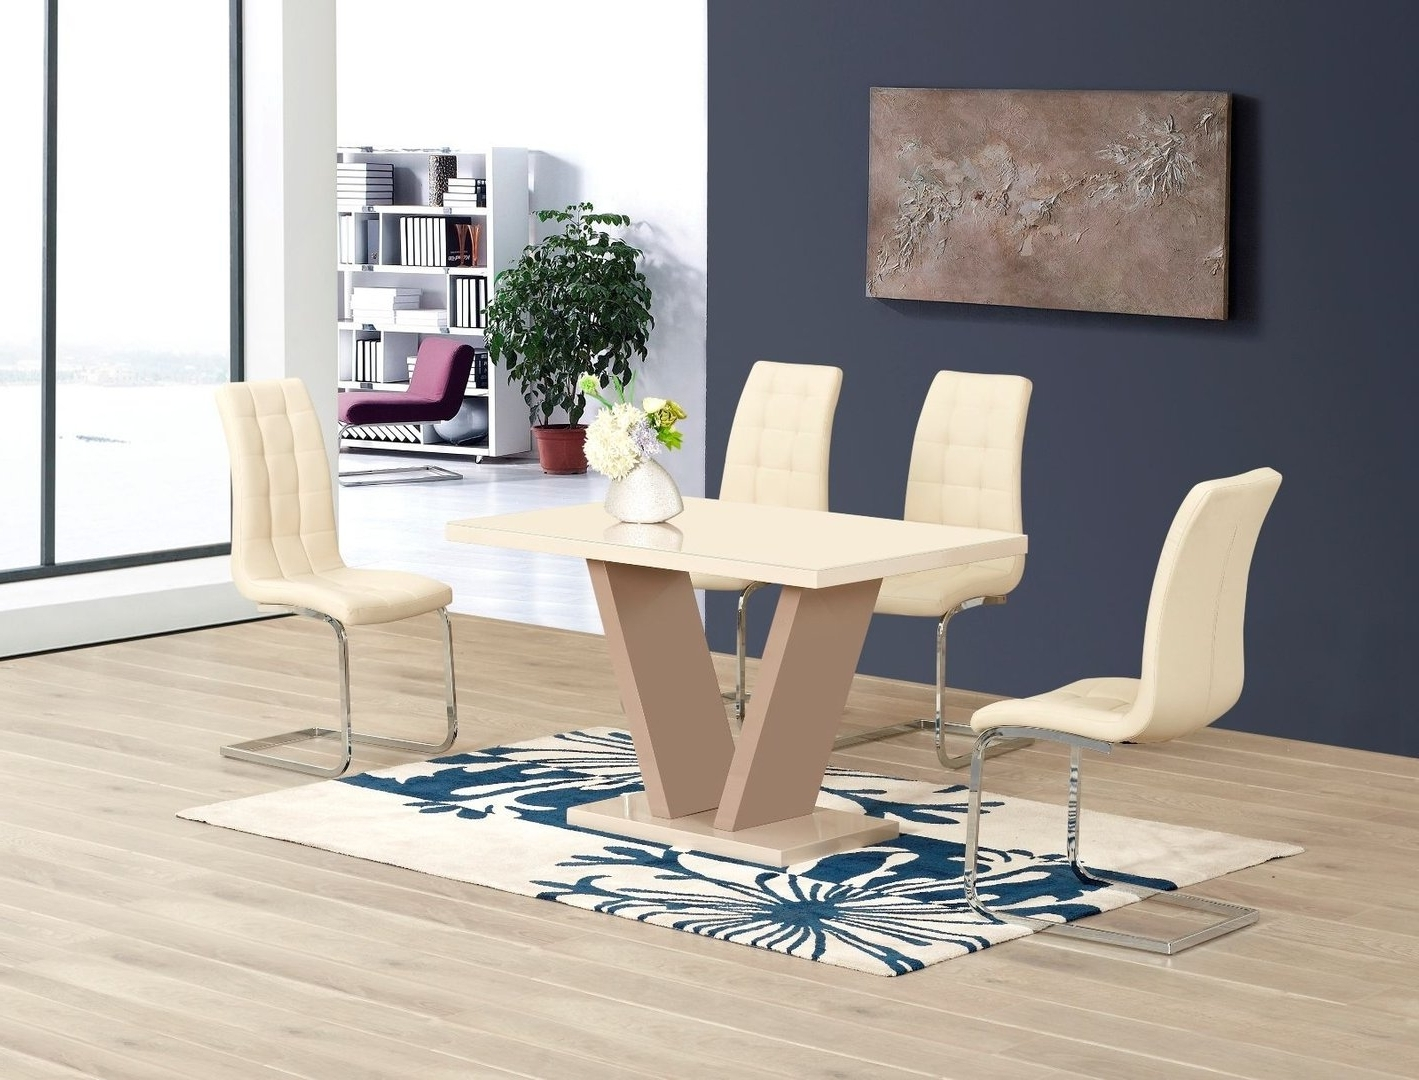 Most Popular High Gloss Dining Tables Sets Regarding Cream High Gloss Glass Dining Table And 6 Chairs – Homegenies (View 4 of 25)